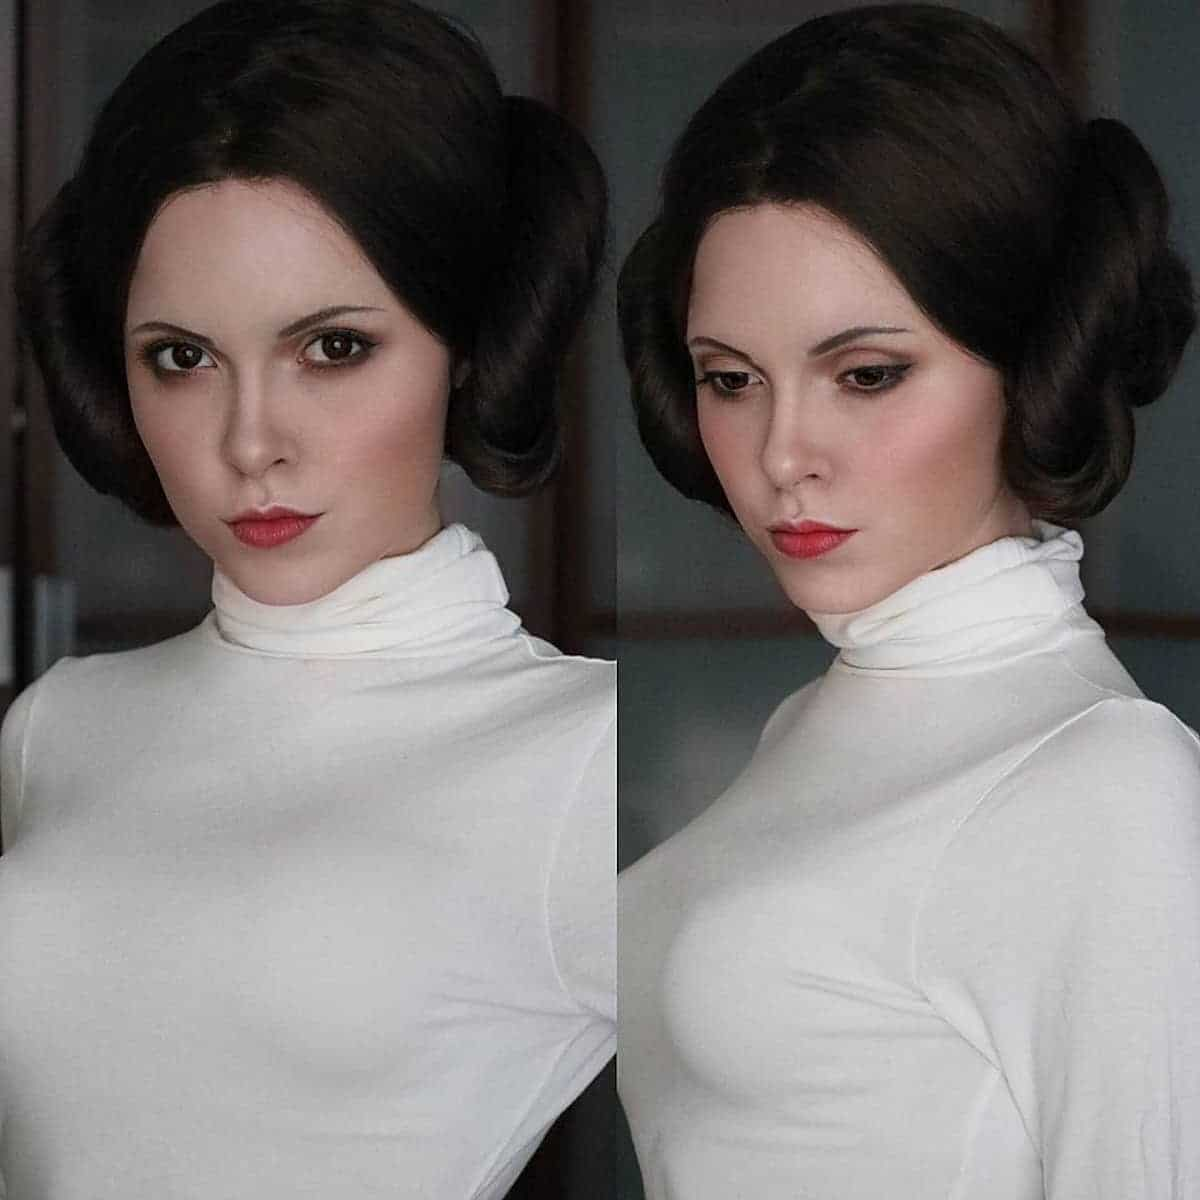 Princess Leia Cosplay by Ilona Bugaeva